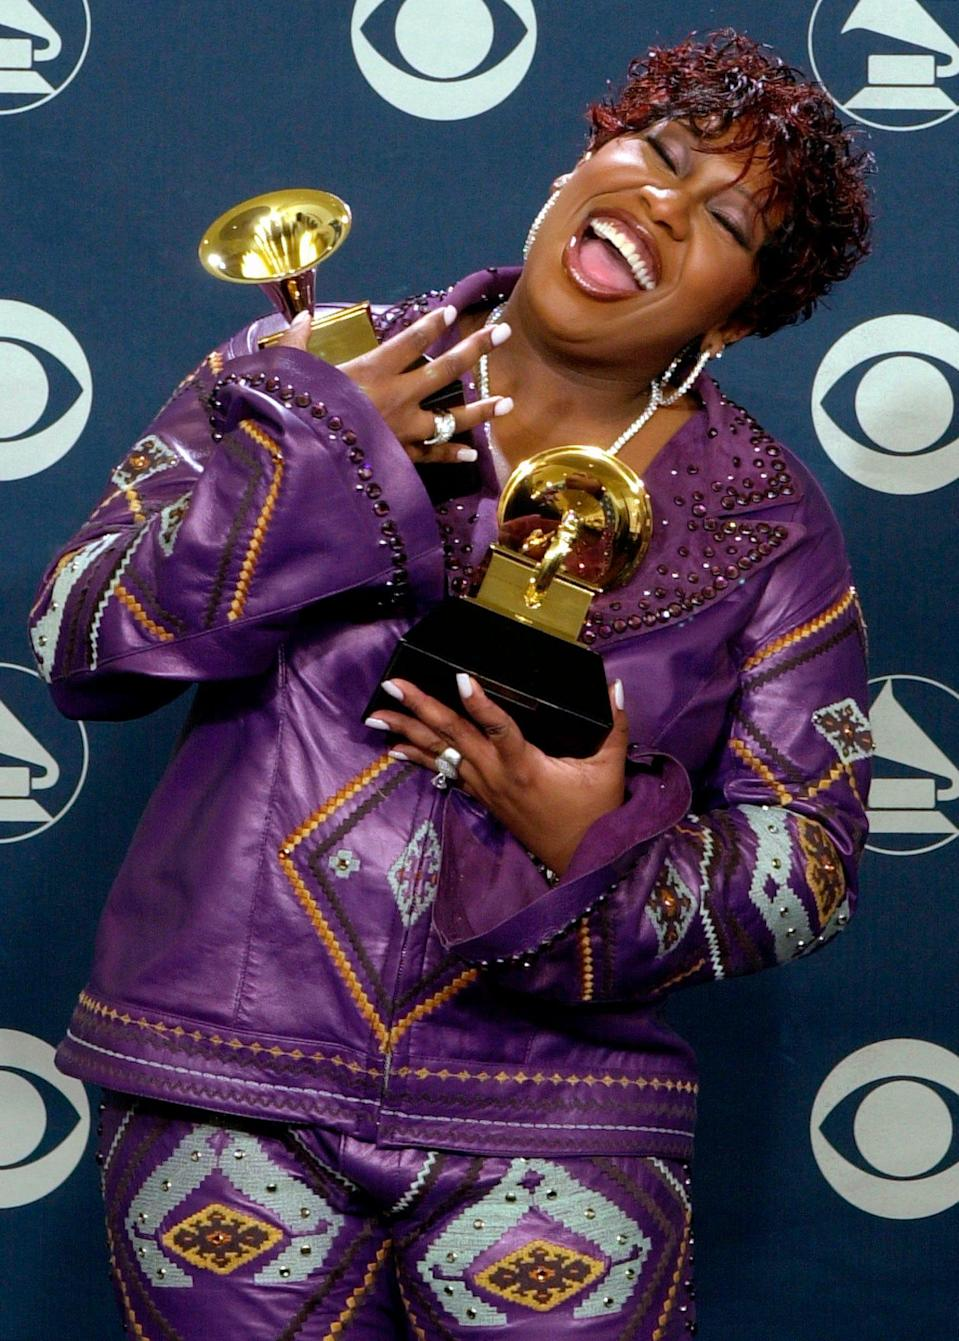 Missy Elliott took home her first solo Grammy for